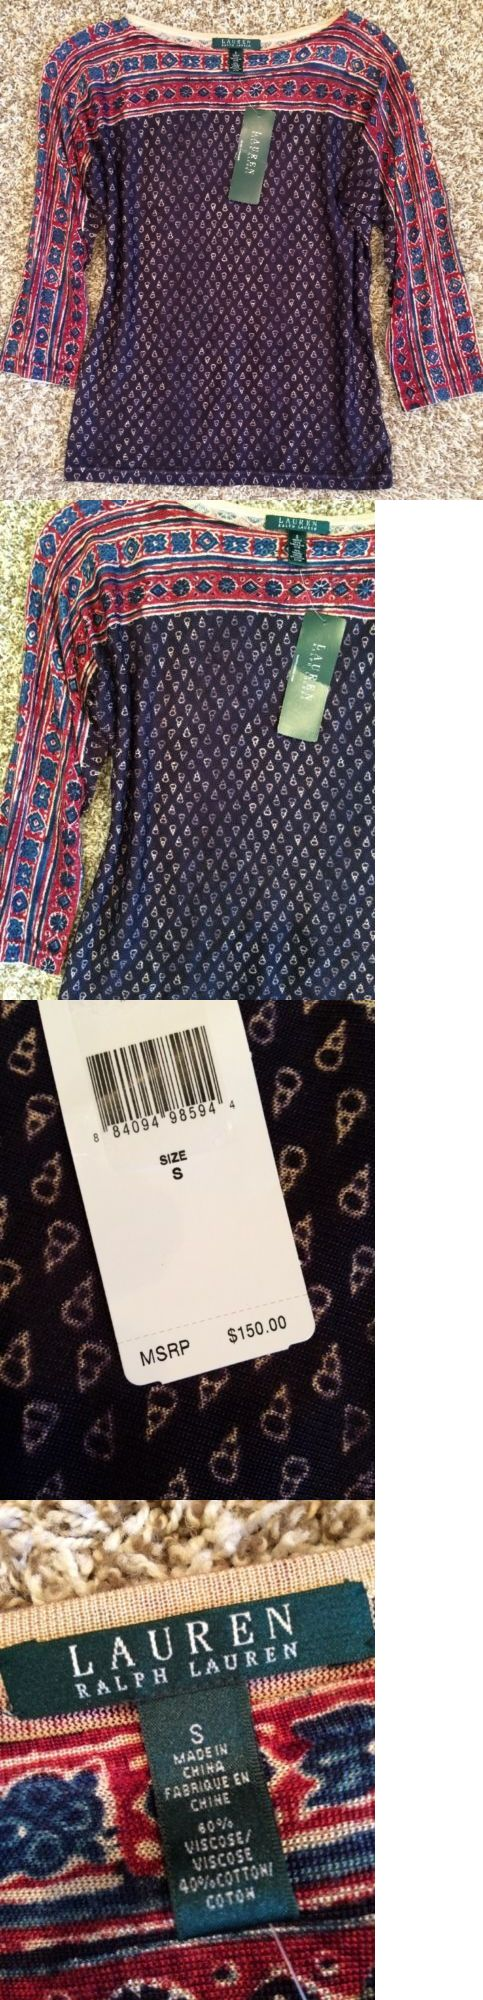 Women Tops And Blouses: Nwt!! Womens Ralph Lauren Aztec Print Shirt Top Blouse Size S $150 BUY IT NOW ONLY: $33.99